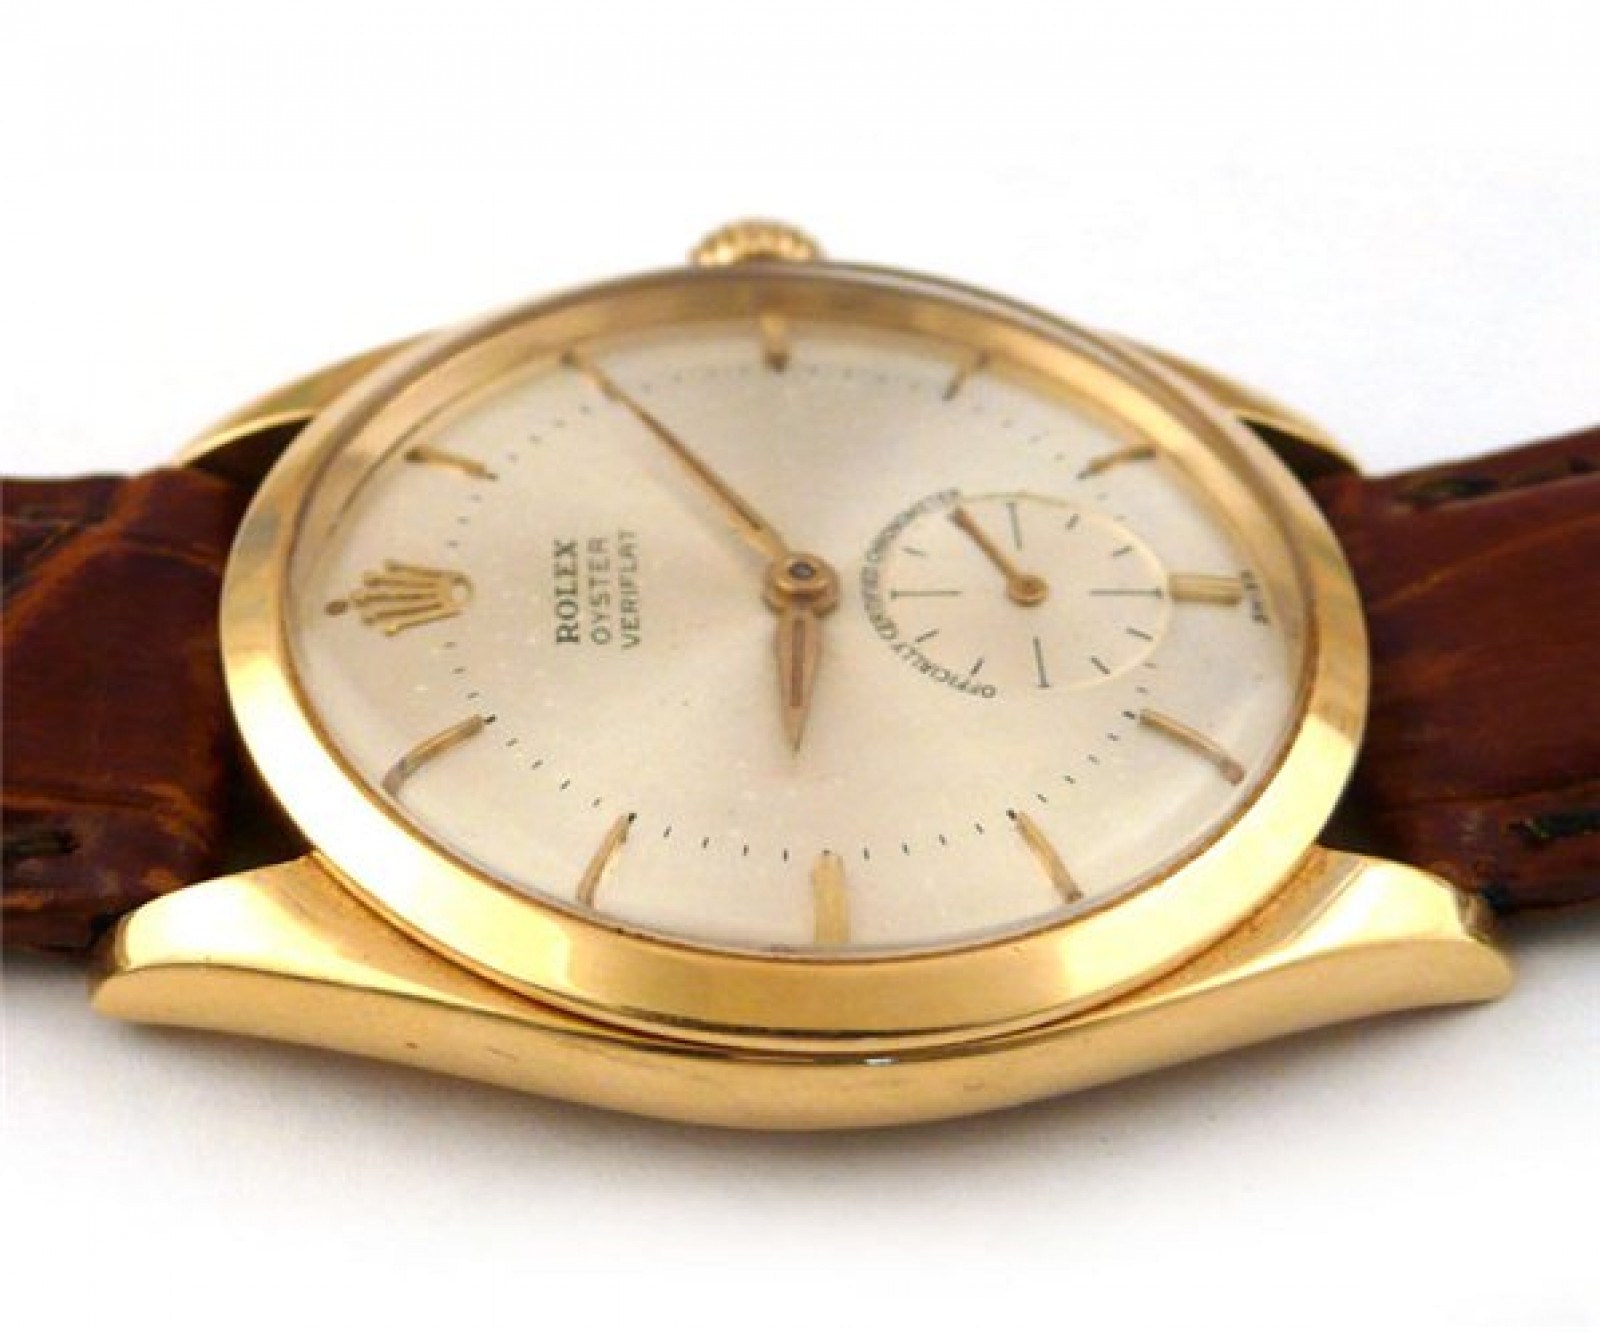 Vintage Rolex Veriflat 6512 Gold with Silver Dial